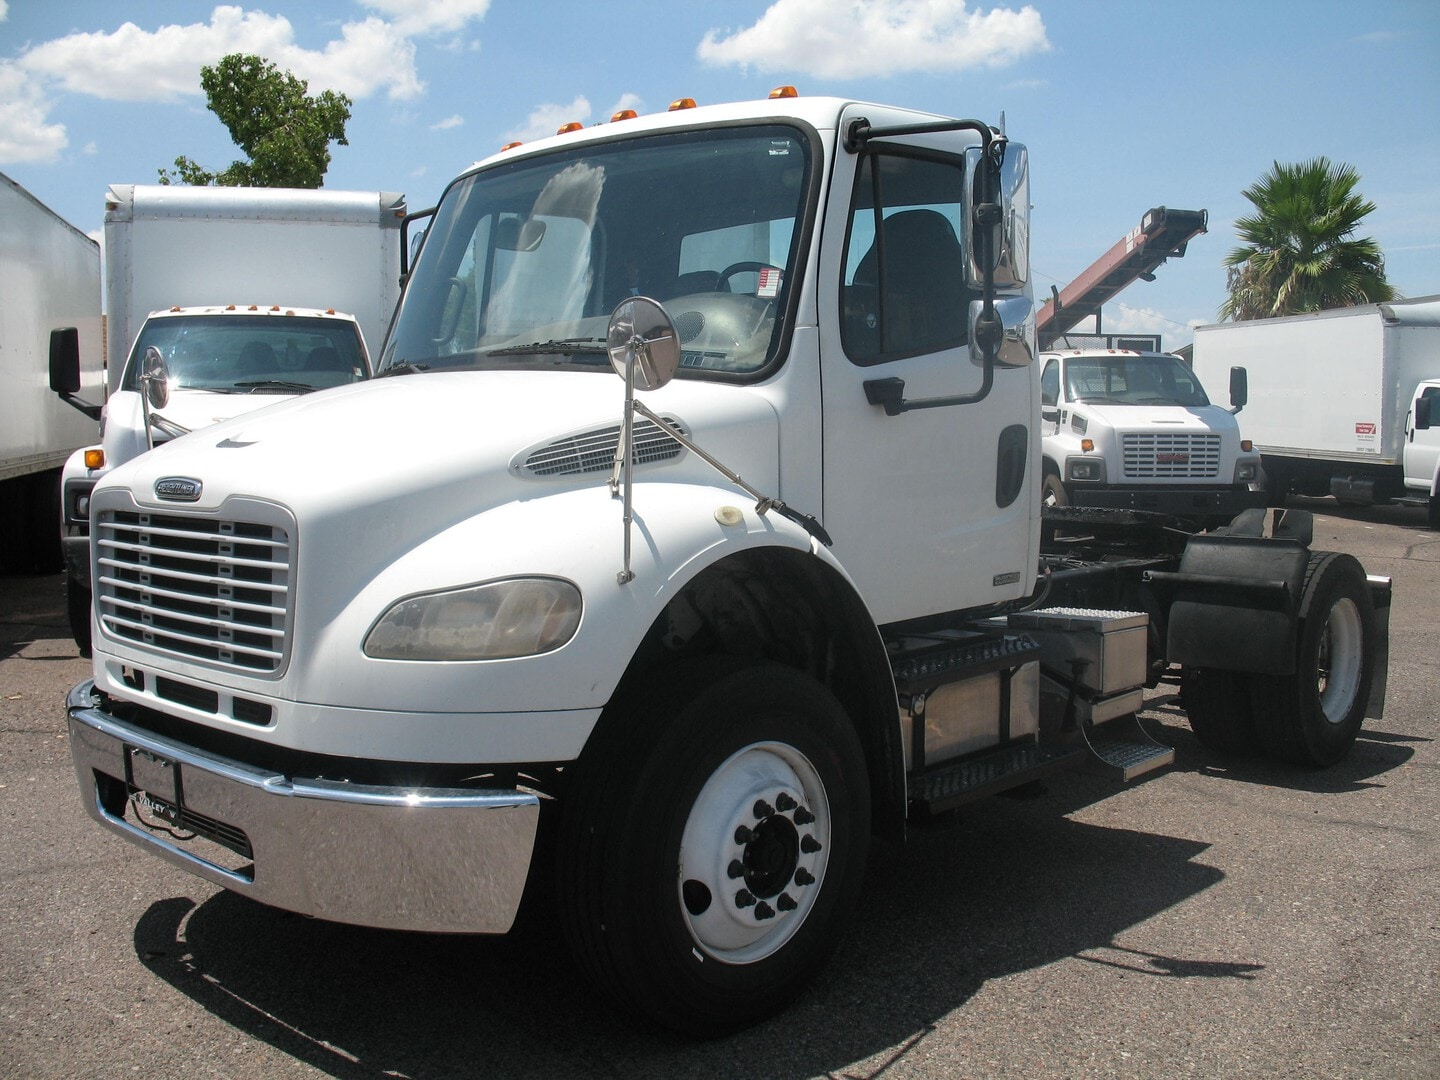 Used, 2009, Freightliner, M2 business class, Fifth Wheels